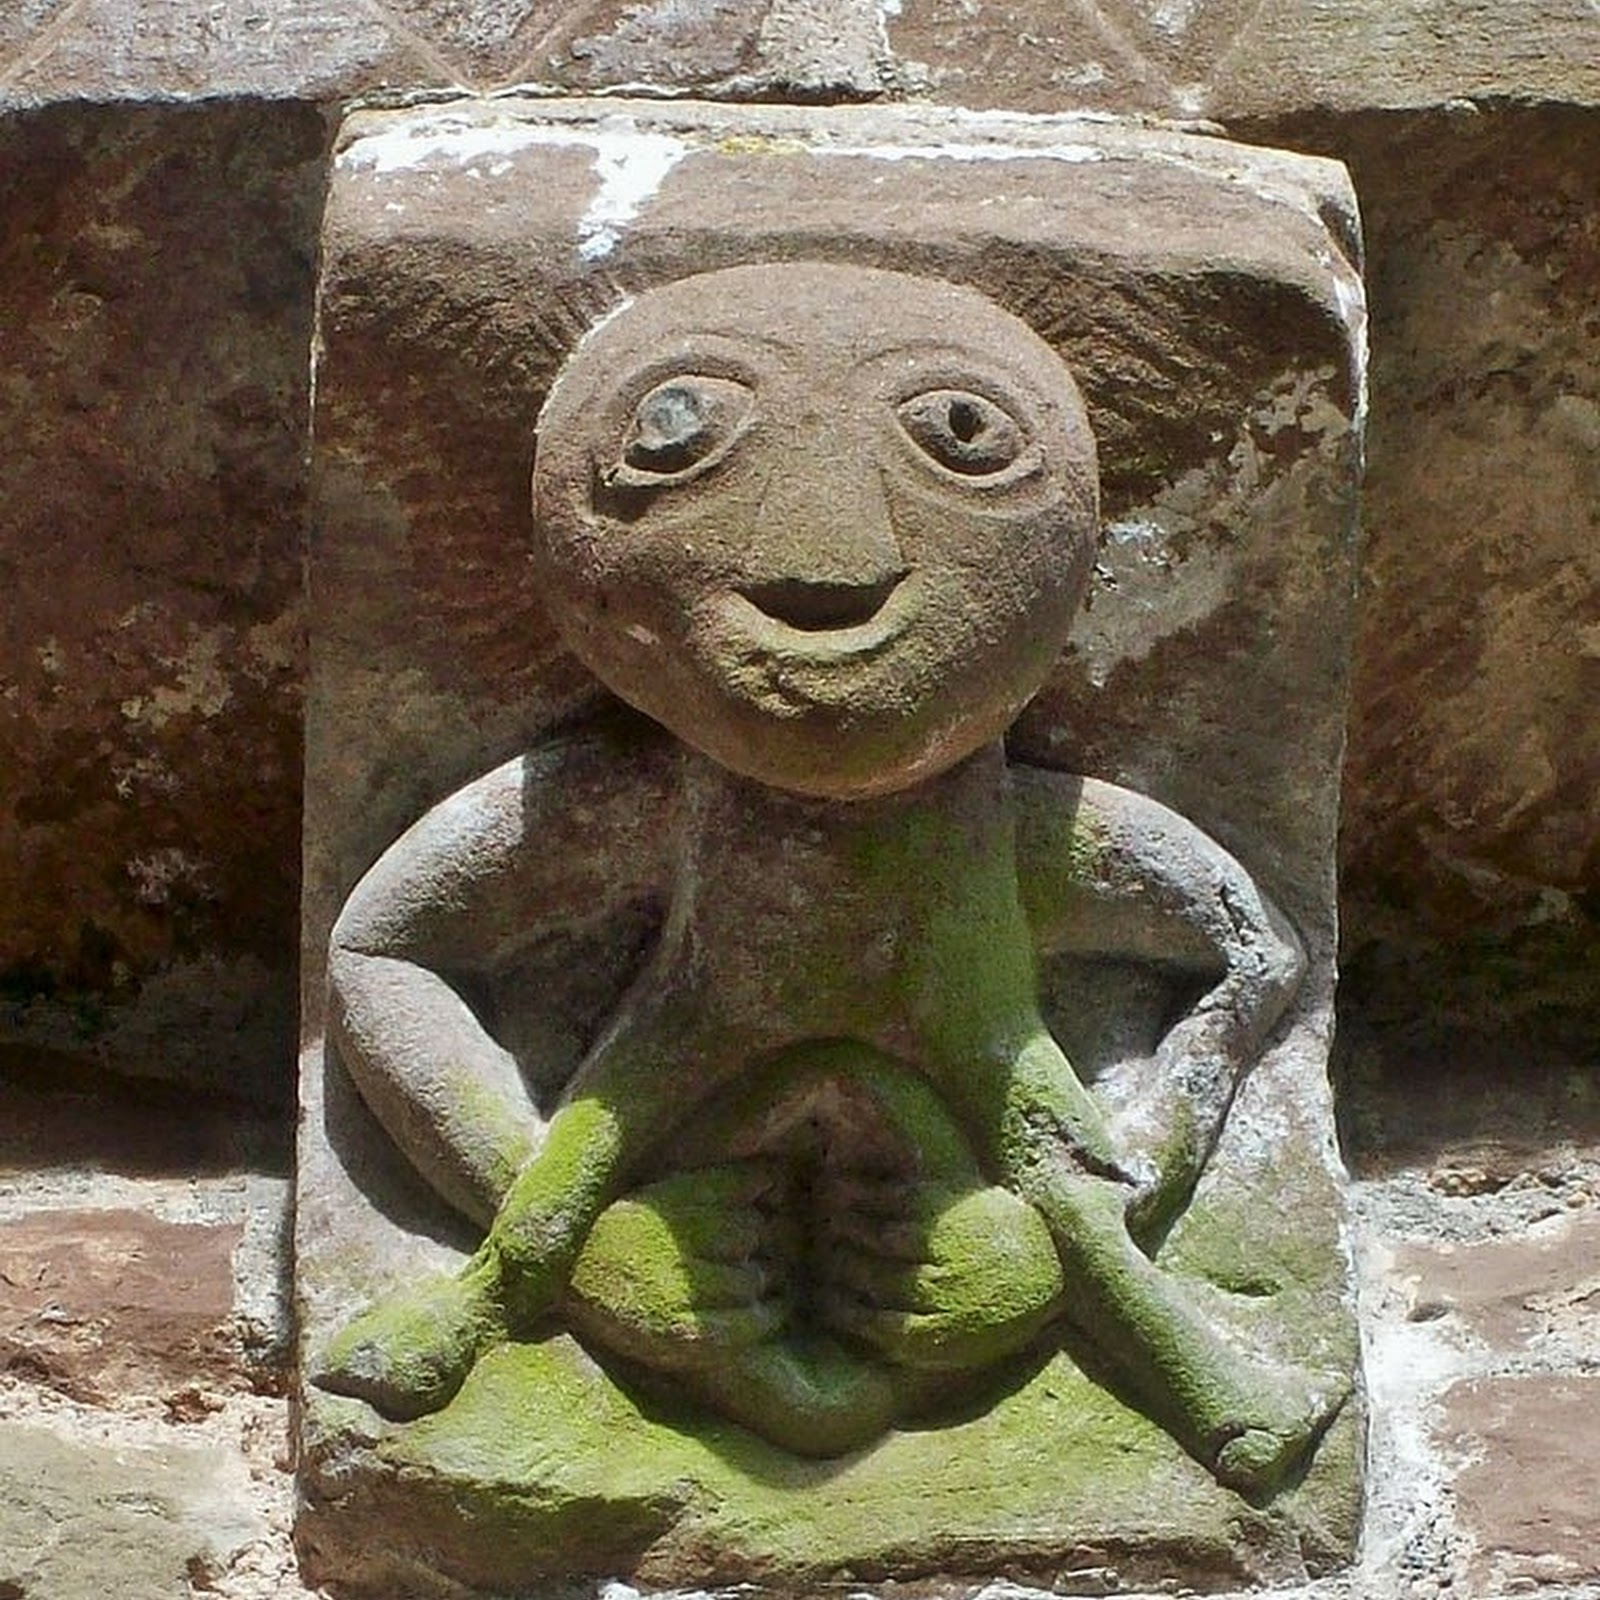 Sheela-Na-Gig: The Mysterious Medieval Carvings of Women Exhibitionists